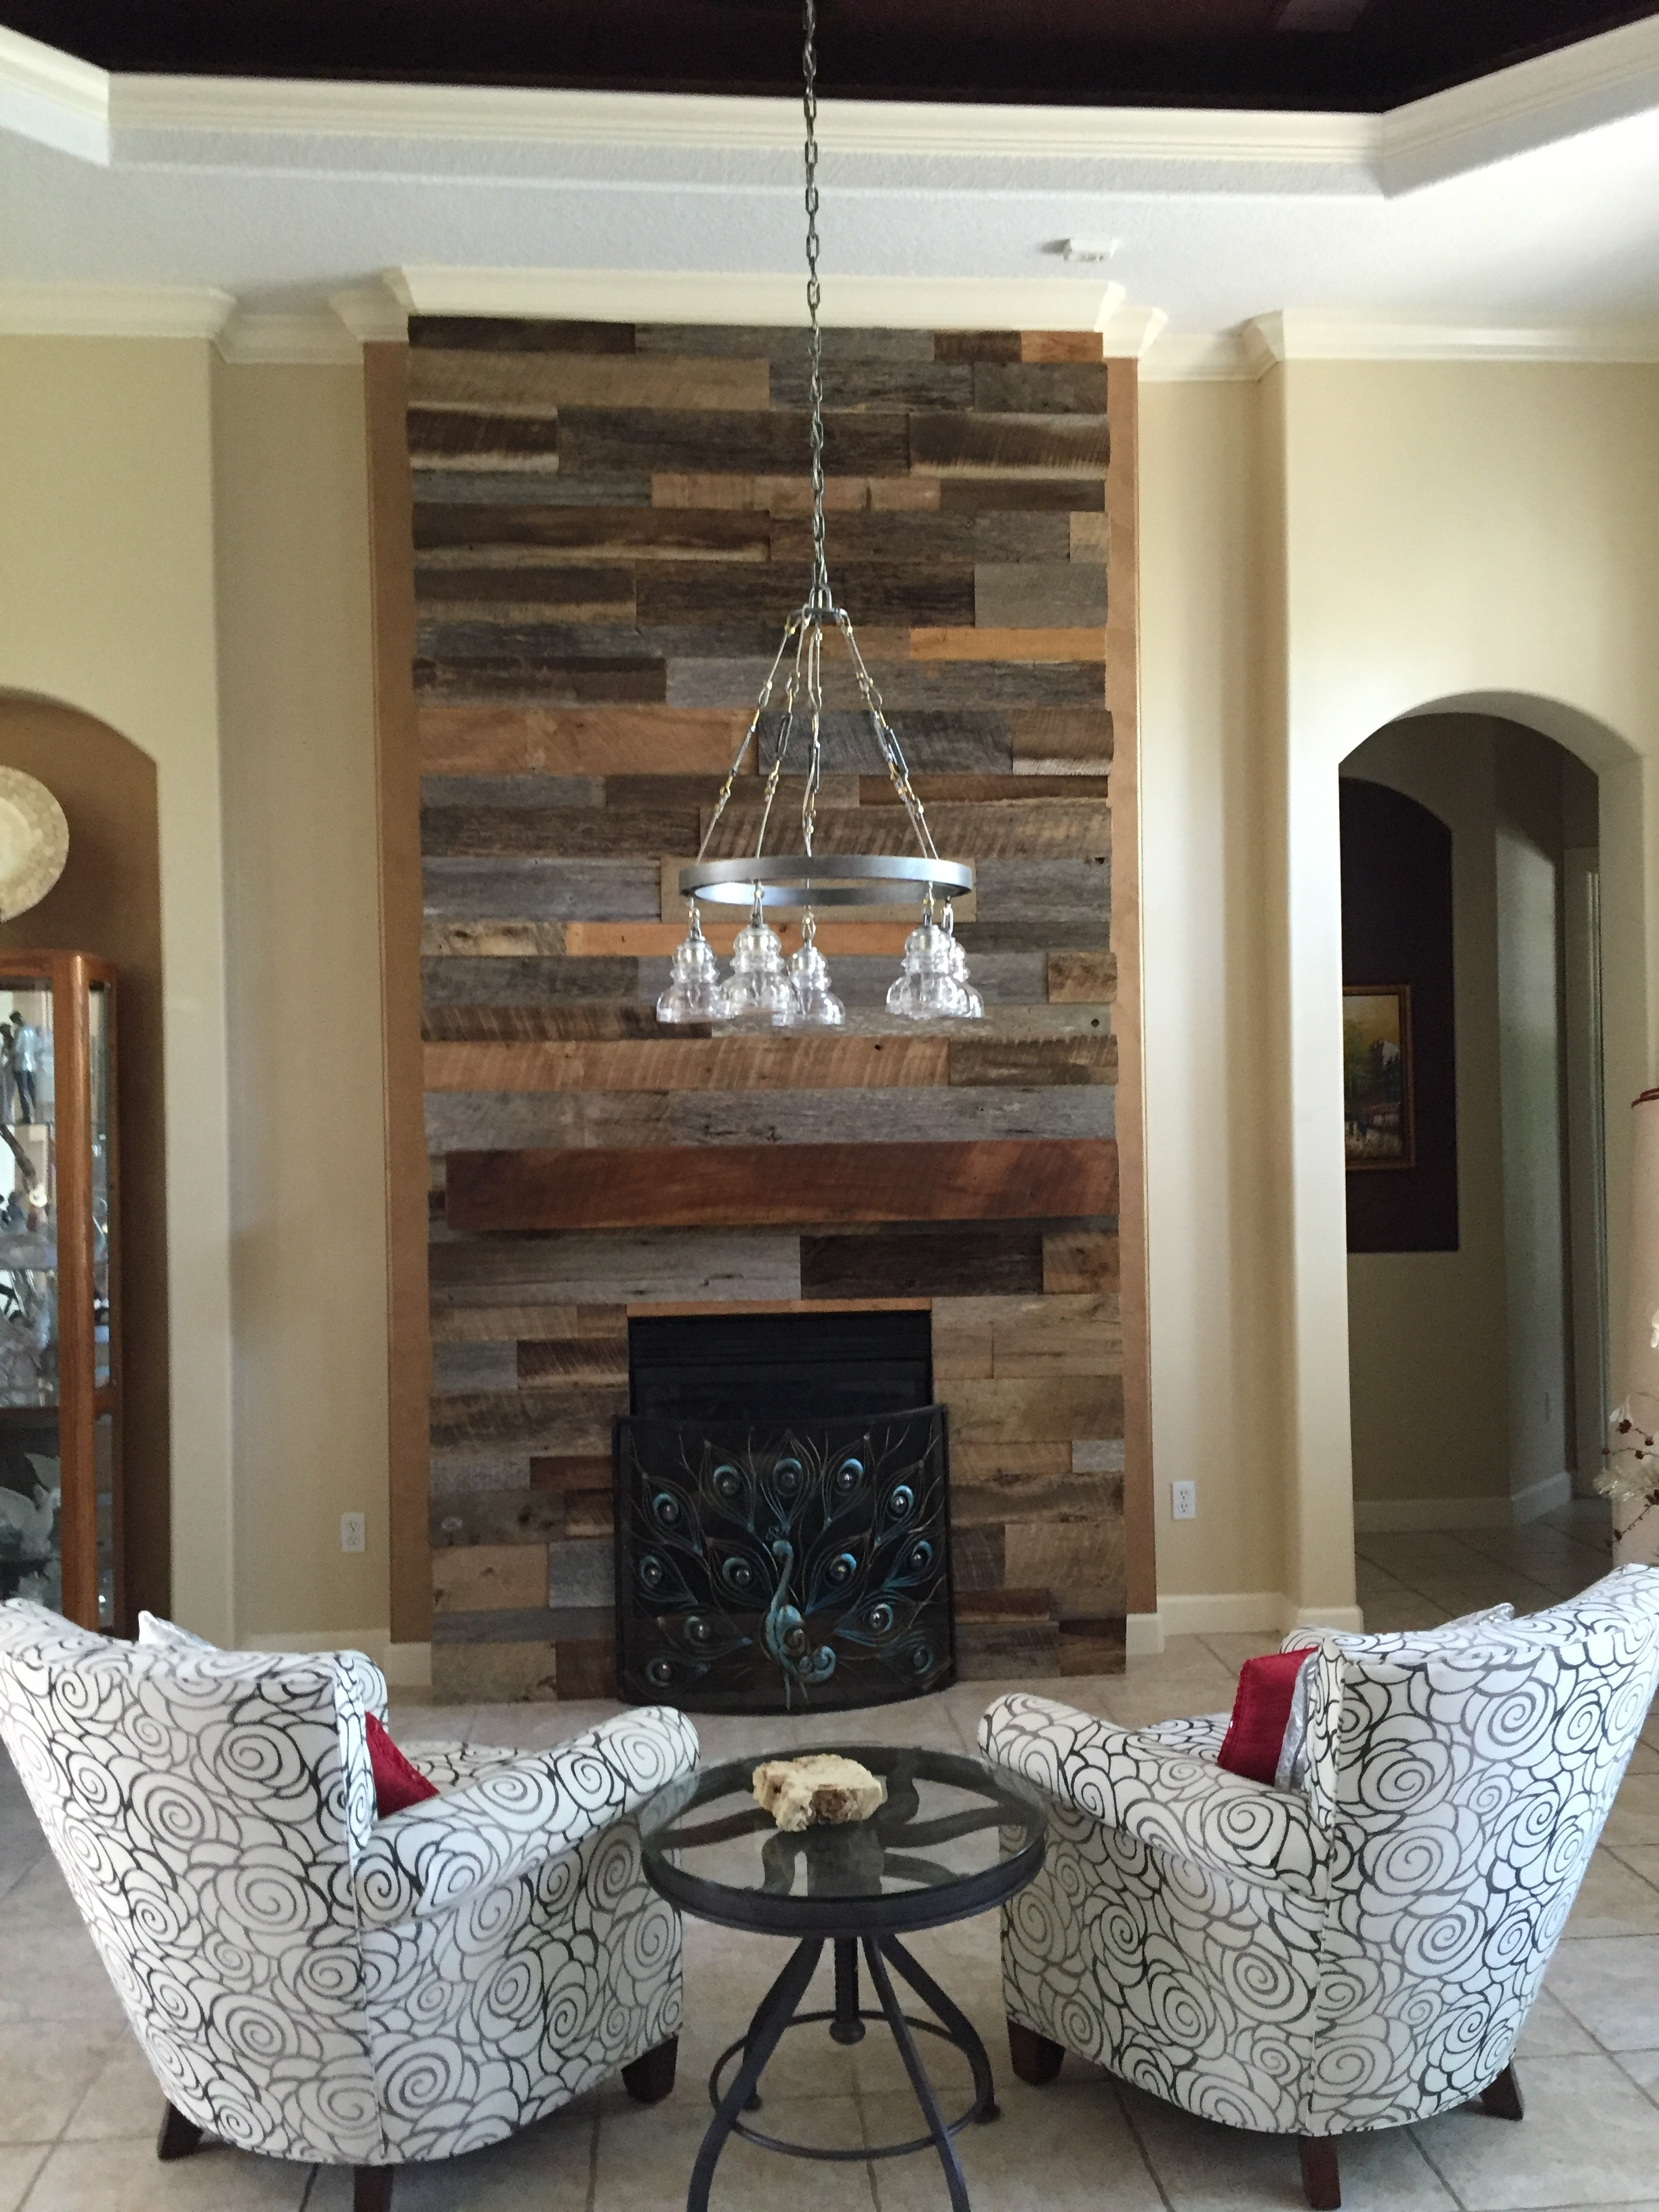 Wood Wall Accent Wood Accent Wall Fireplace Decor Throughout 2017 Reclaimed Wood Wall Accents (View 5 of 15)